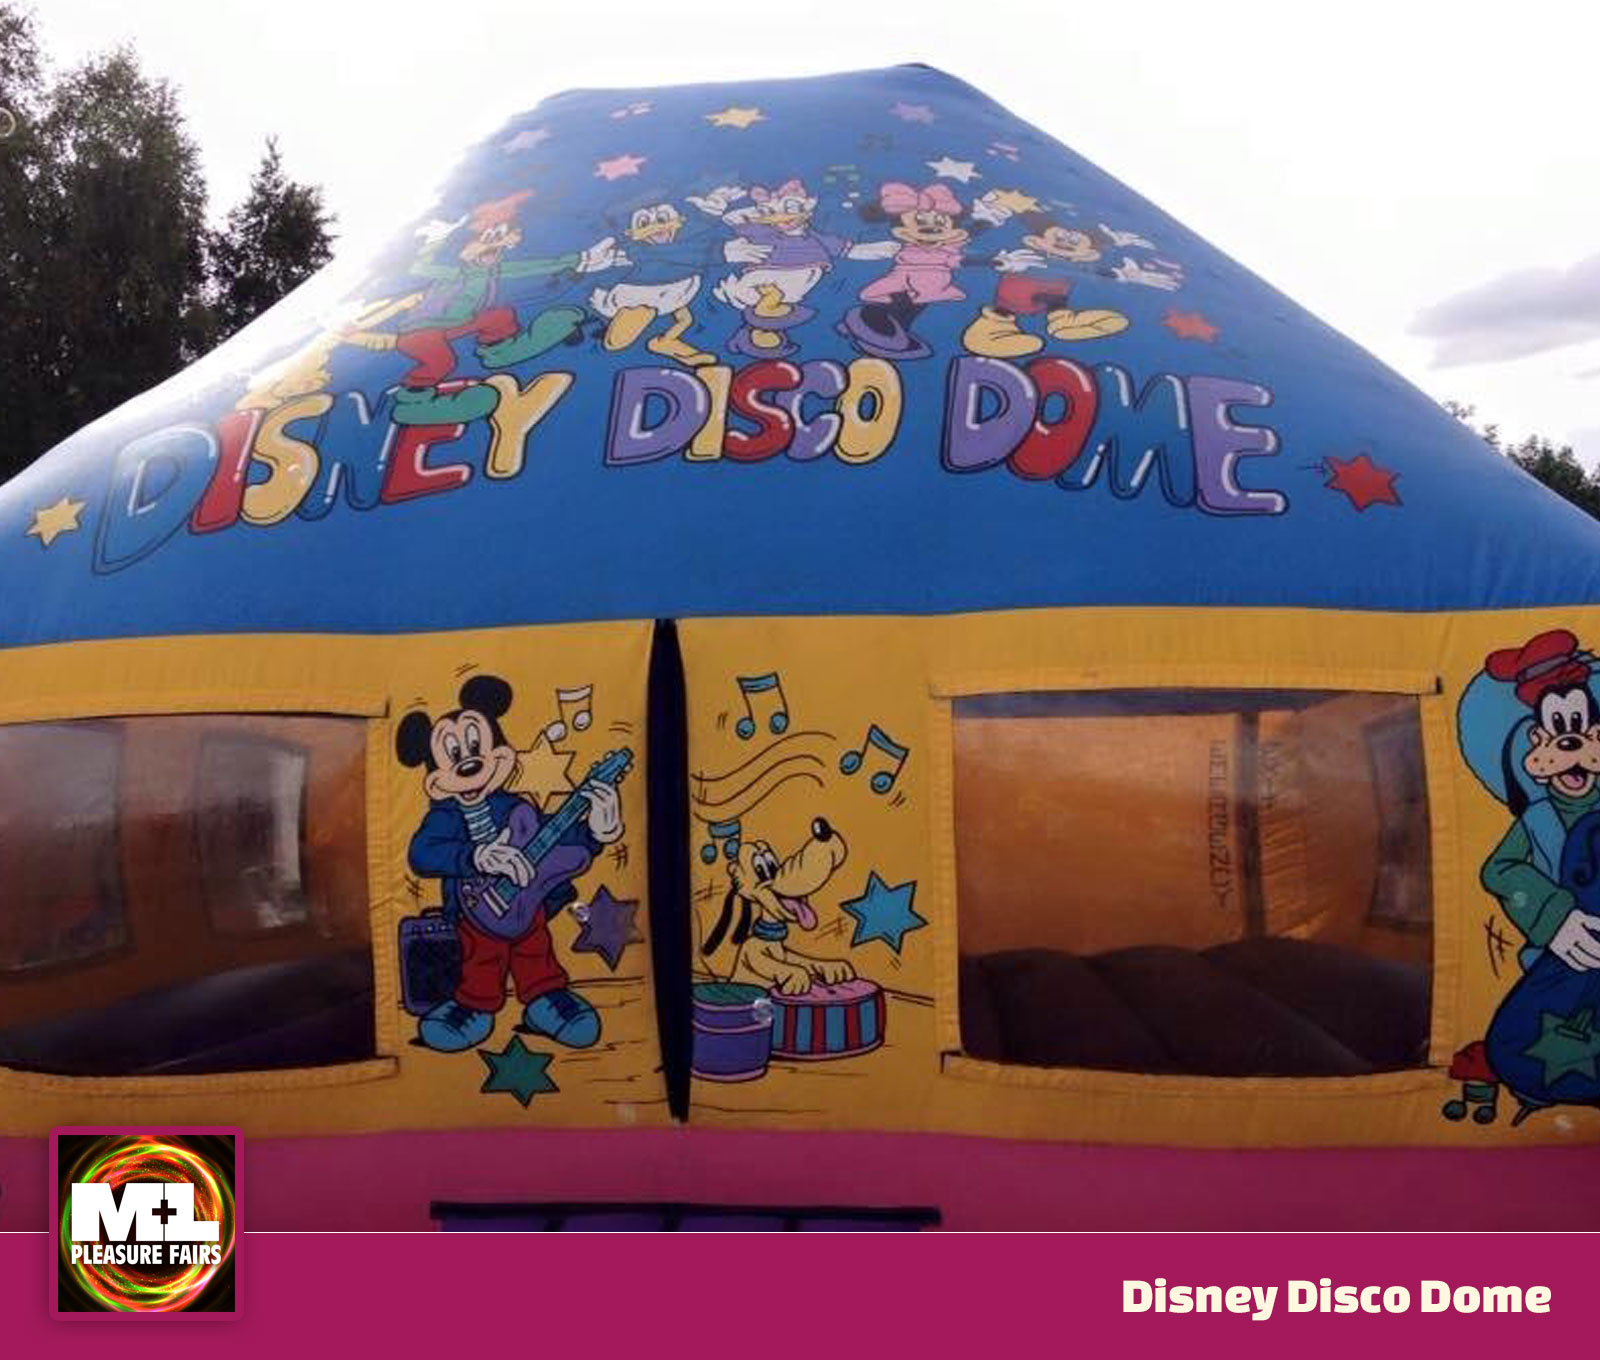 Disney Disco Dome